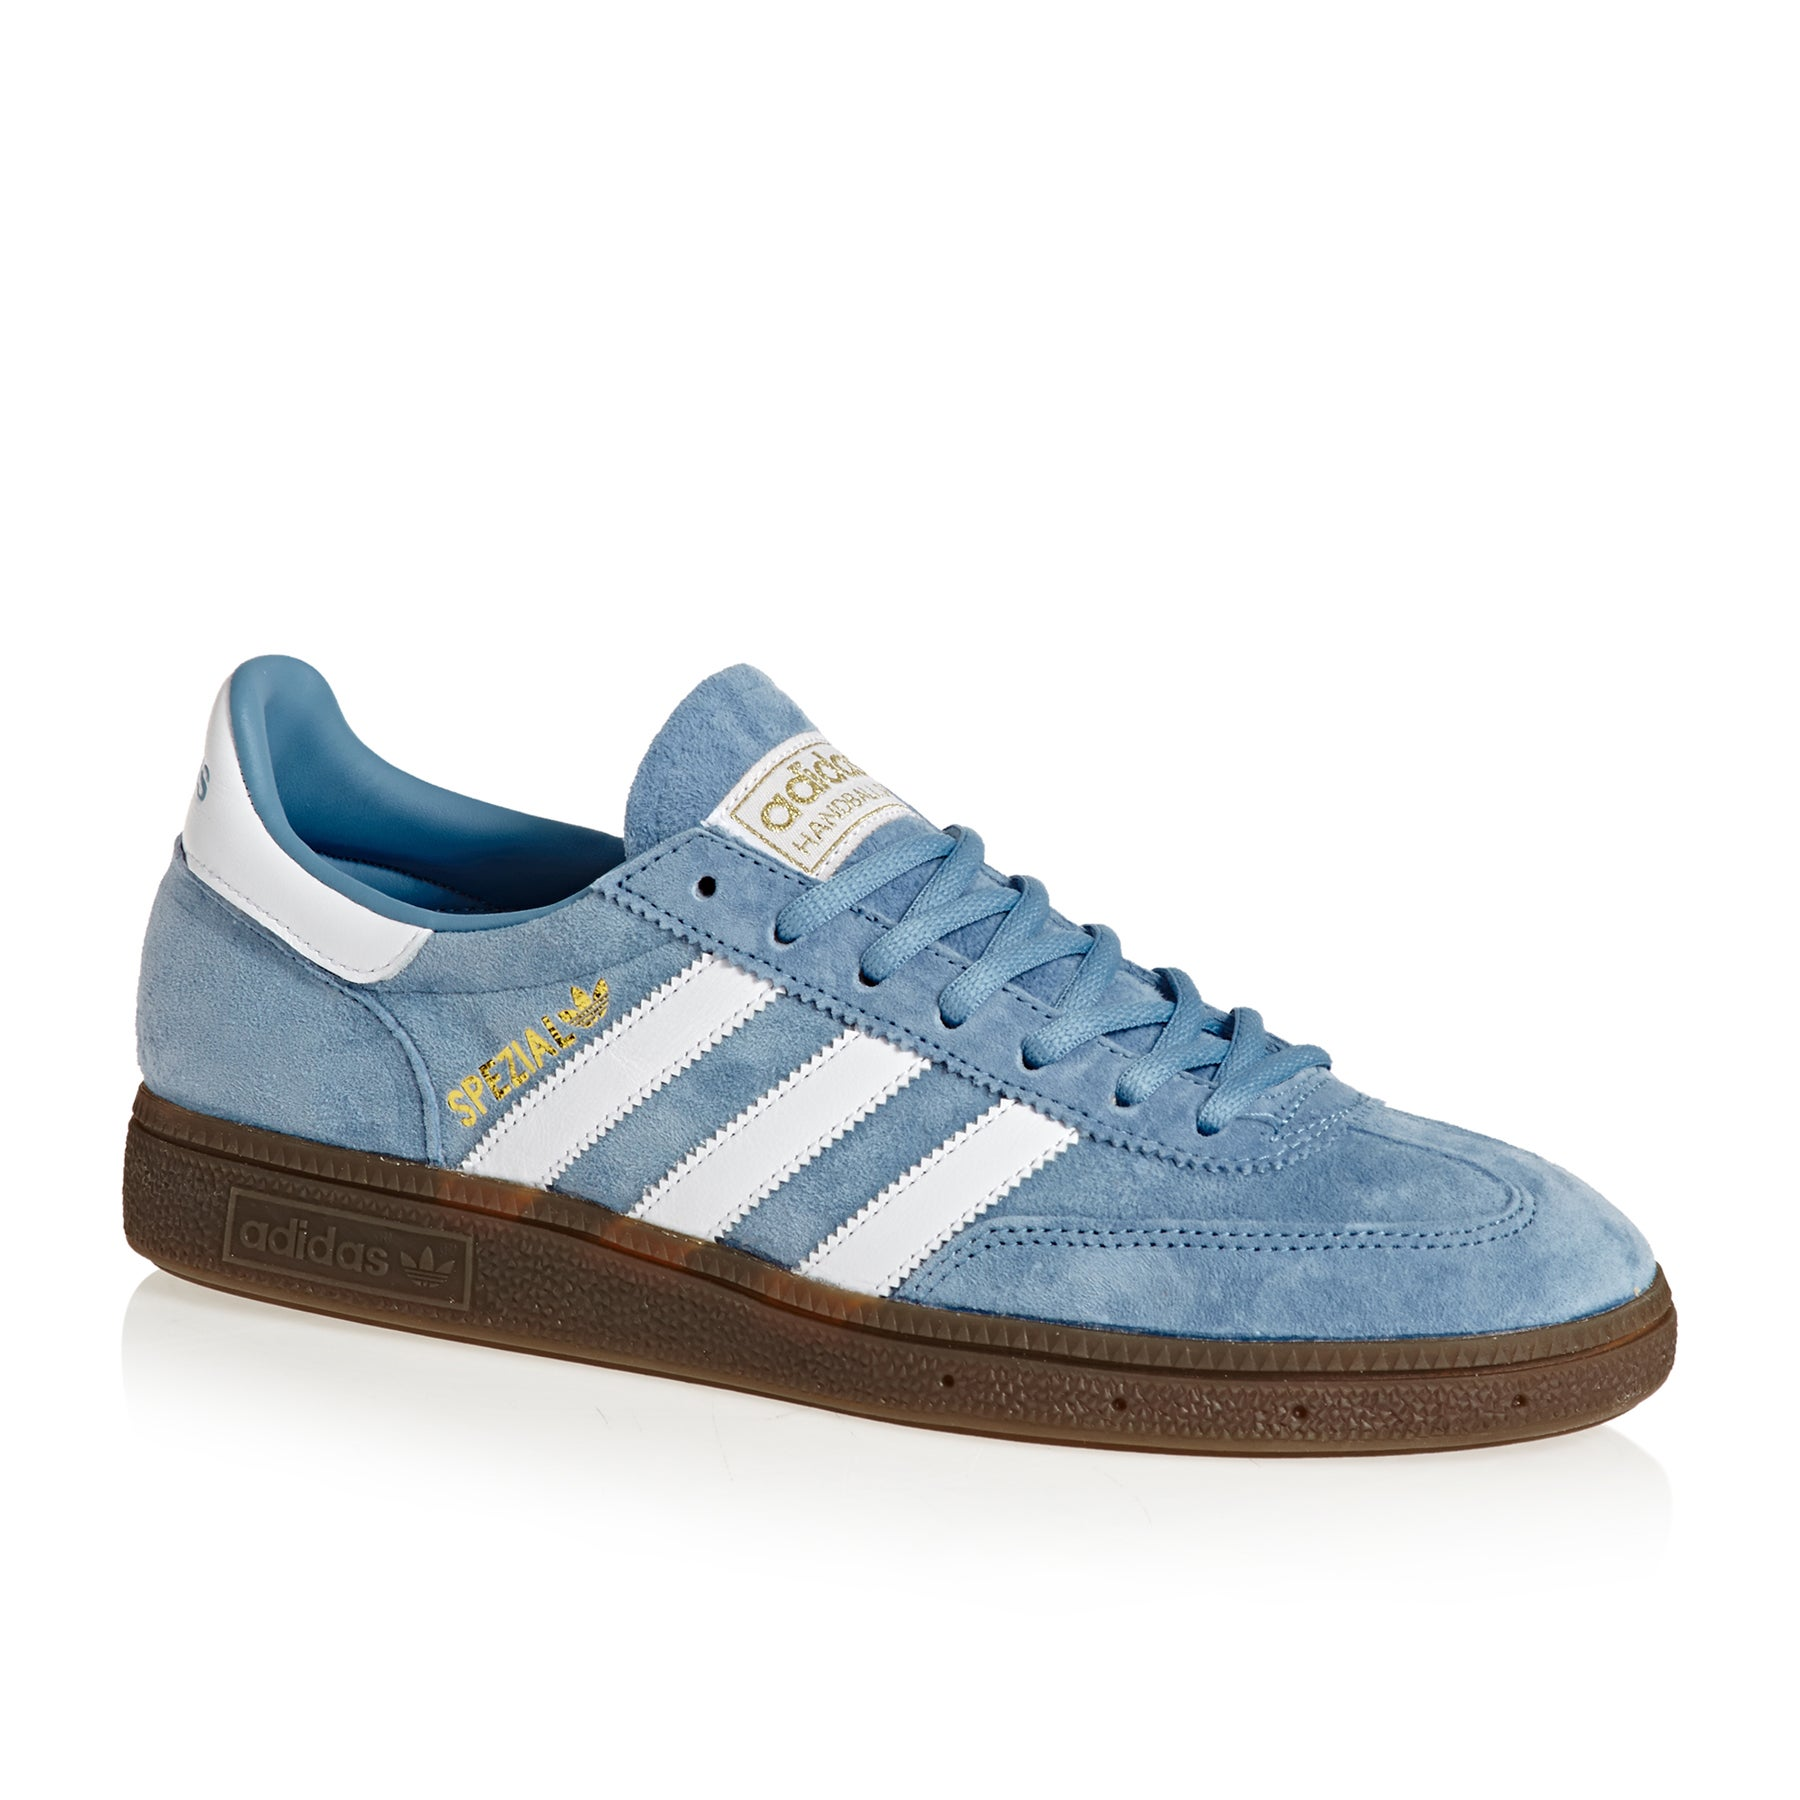 Adidas Originals Handball Spezial Shoes - Ash Blue/FTW White/Gum5